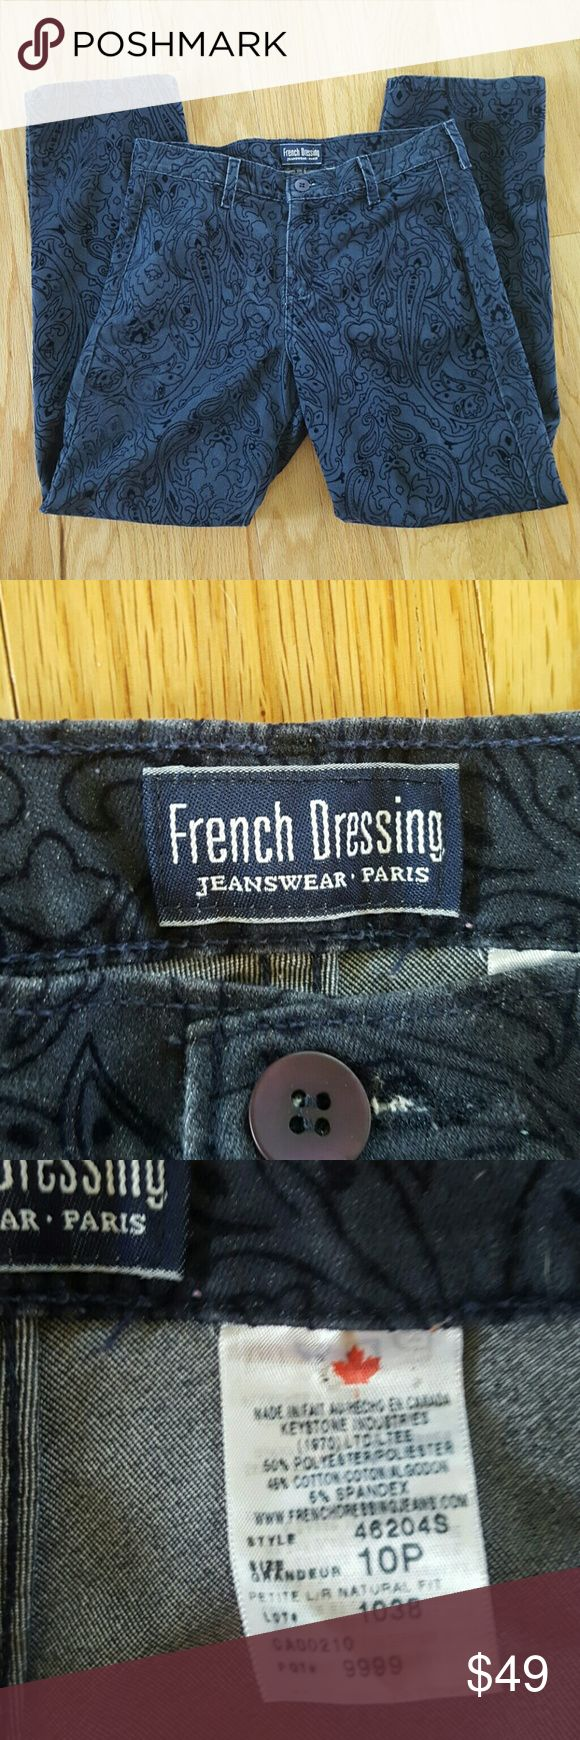 French Dressing Jeans Authentic French Dressing Jeans.  Velvety designs on the outside of the jeans French Dressing Jeans